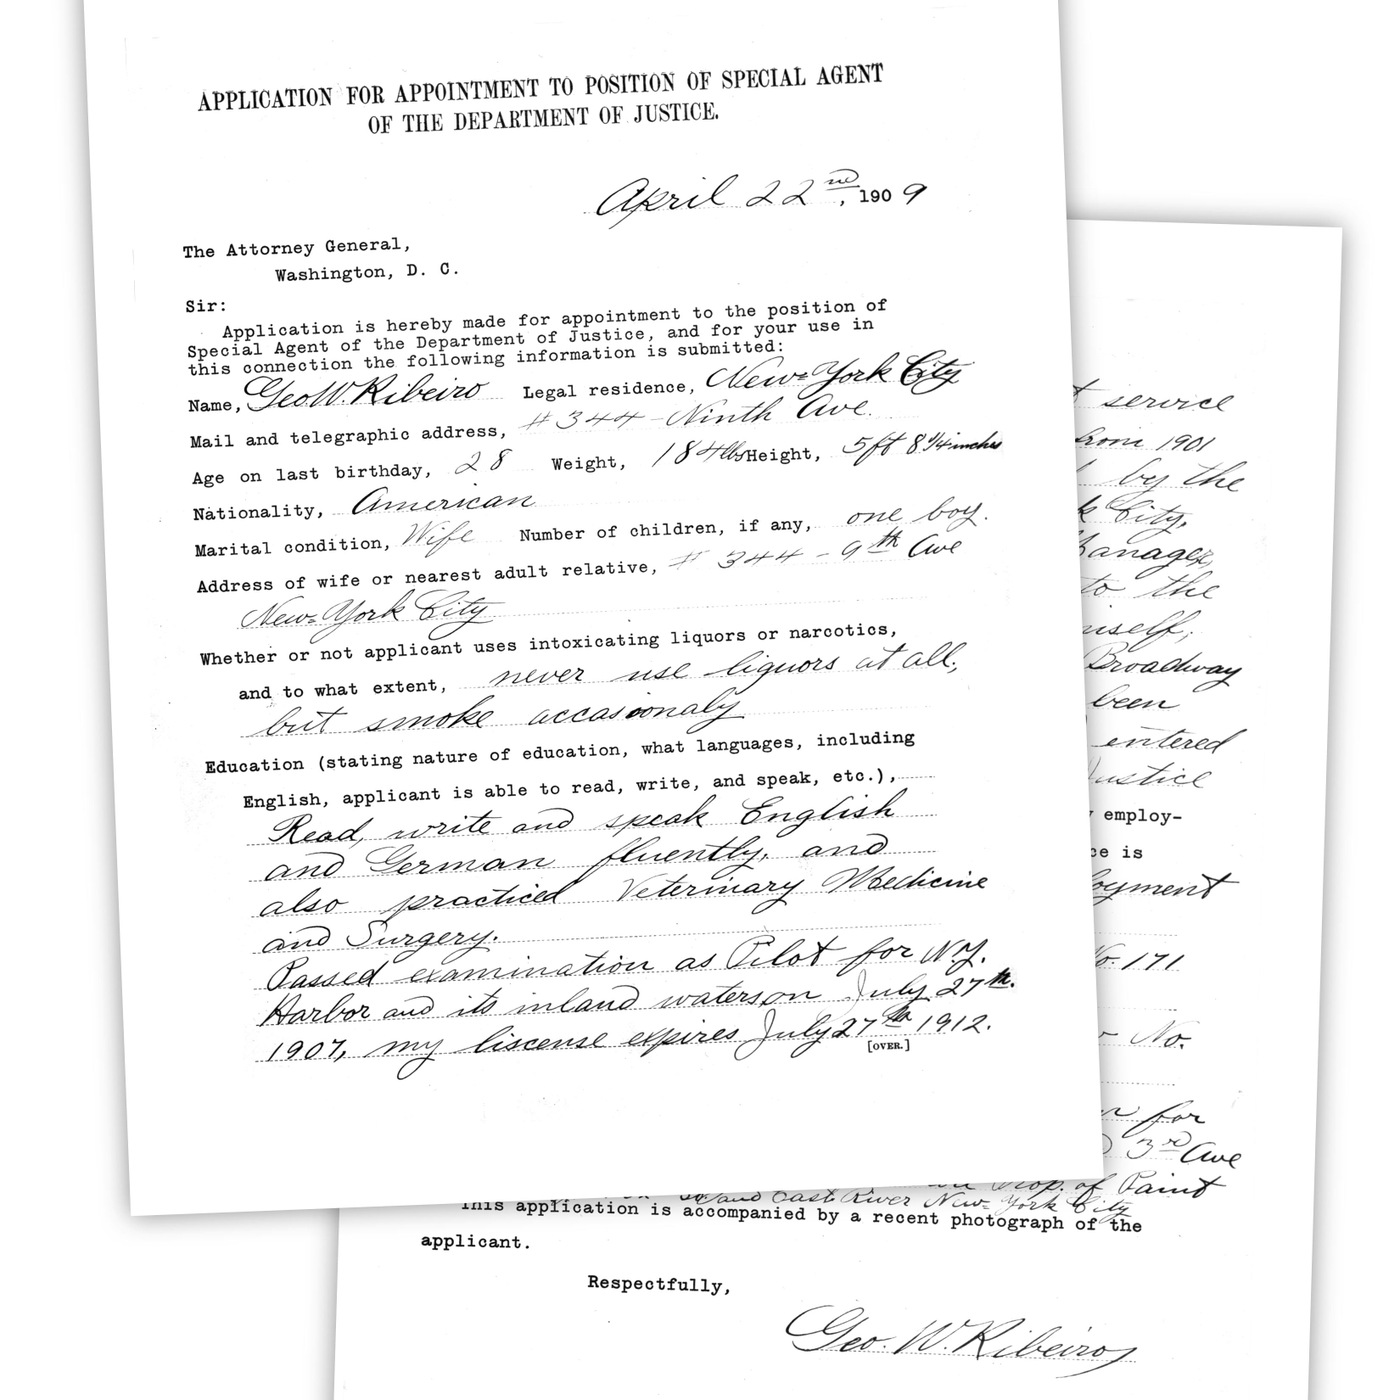 Earliest Application For Special Agent Position In The Department Of  Justice In 1909.